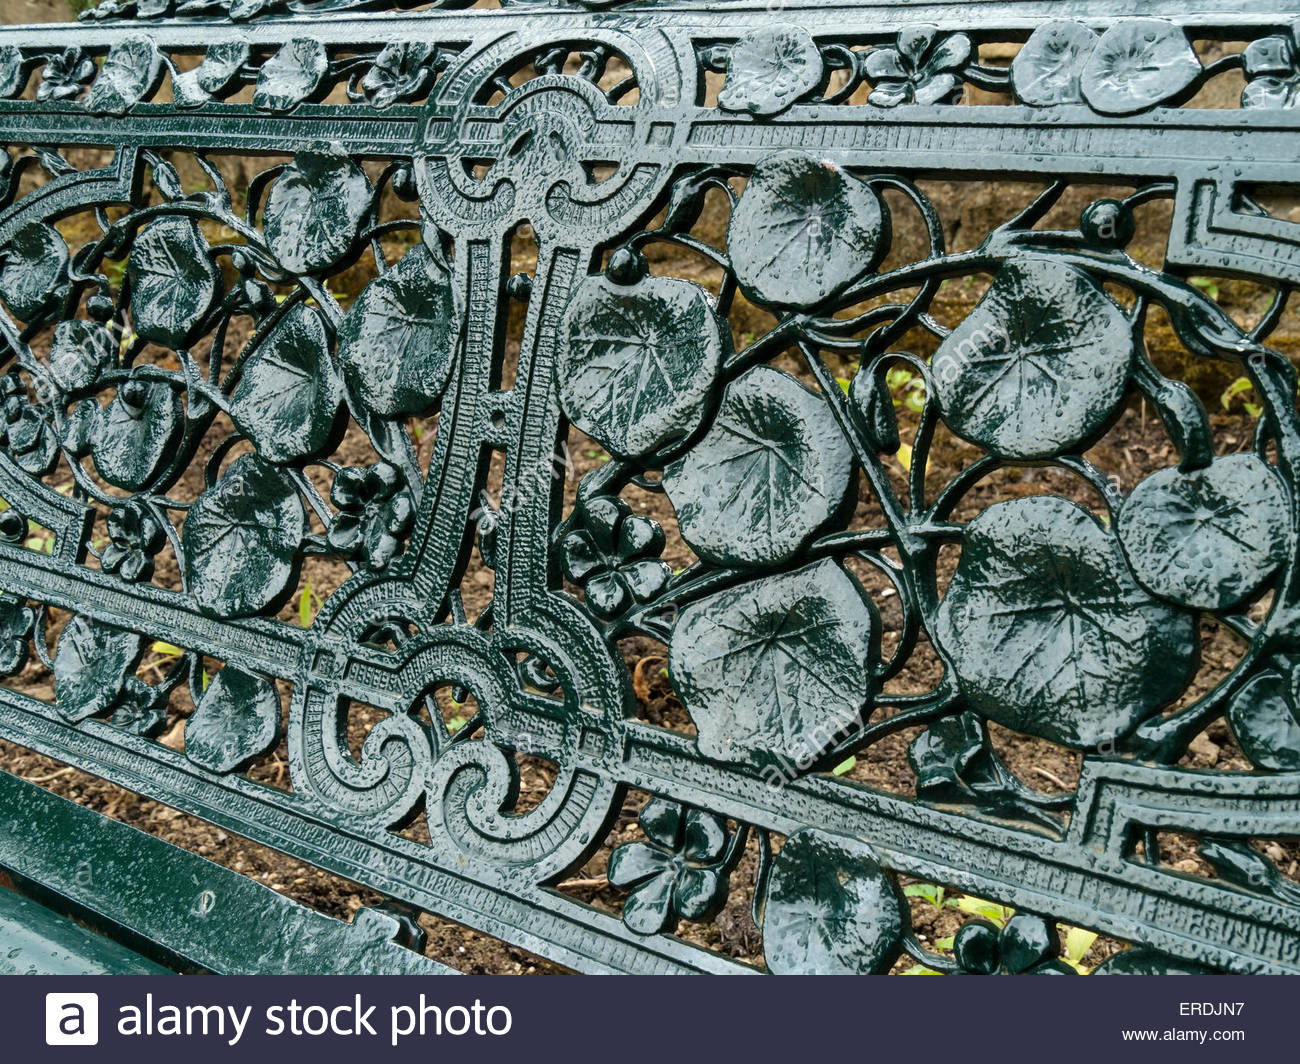 Floral pattern detail from green painted cast metal garden bench seat, Chatswoth, Derbyshire, England, UK. - Stock Image